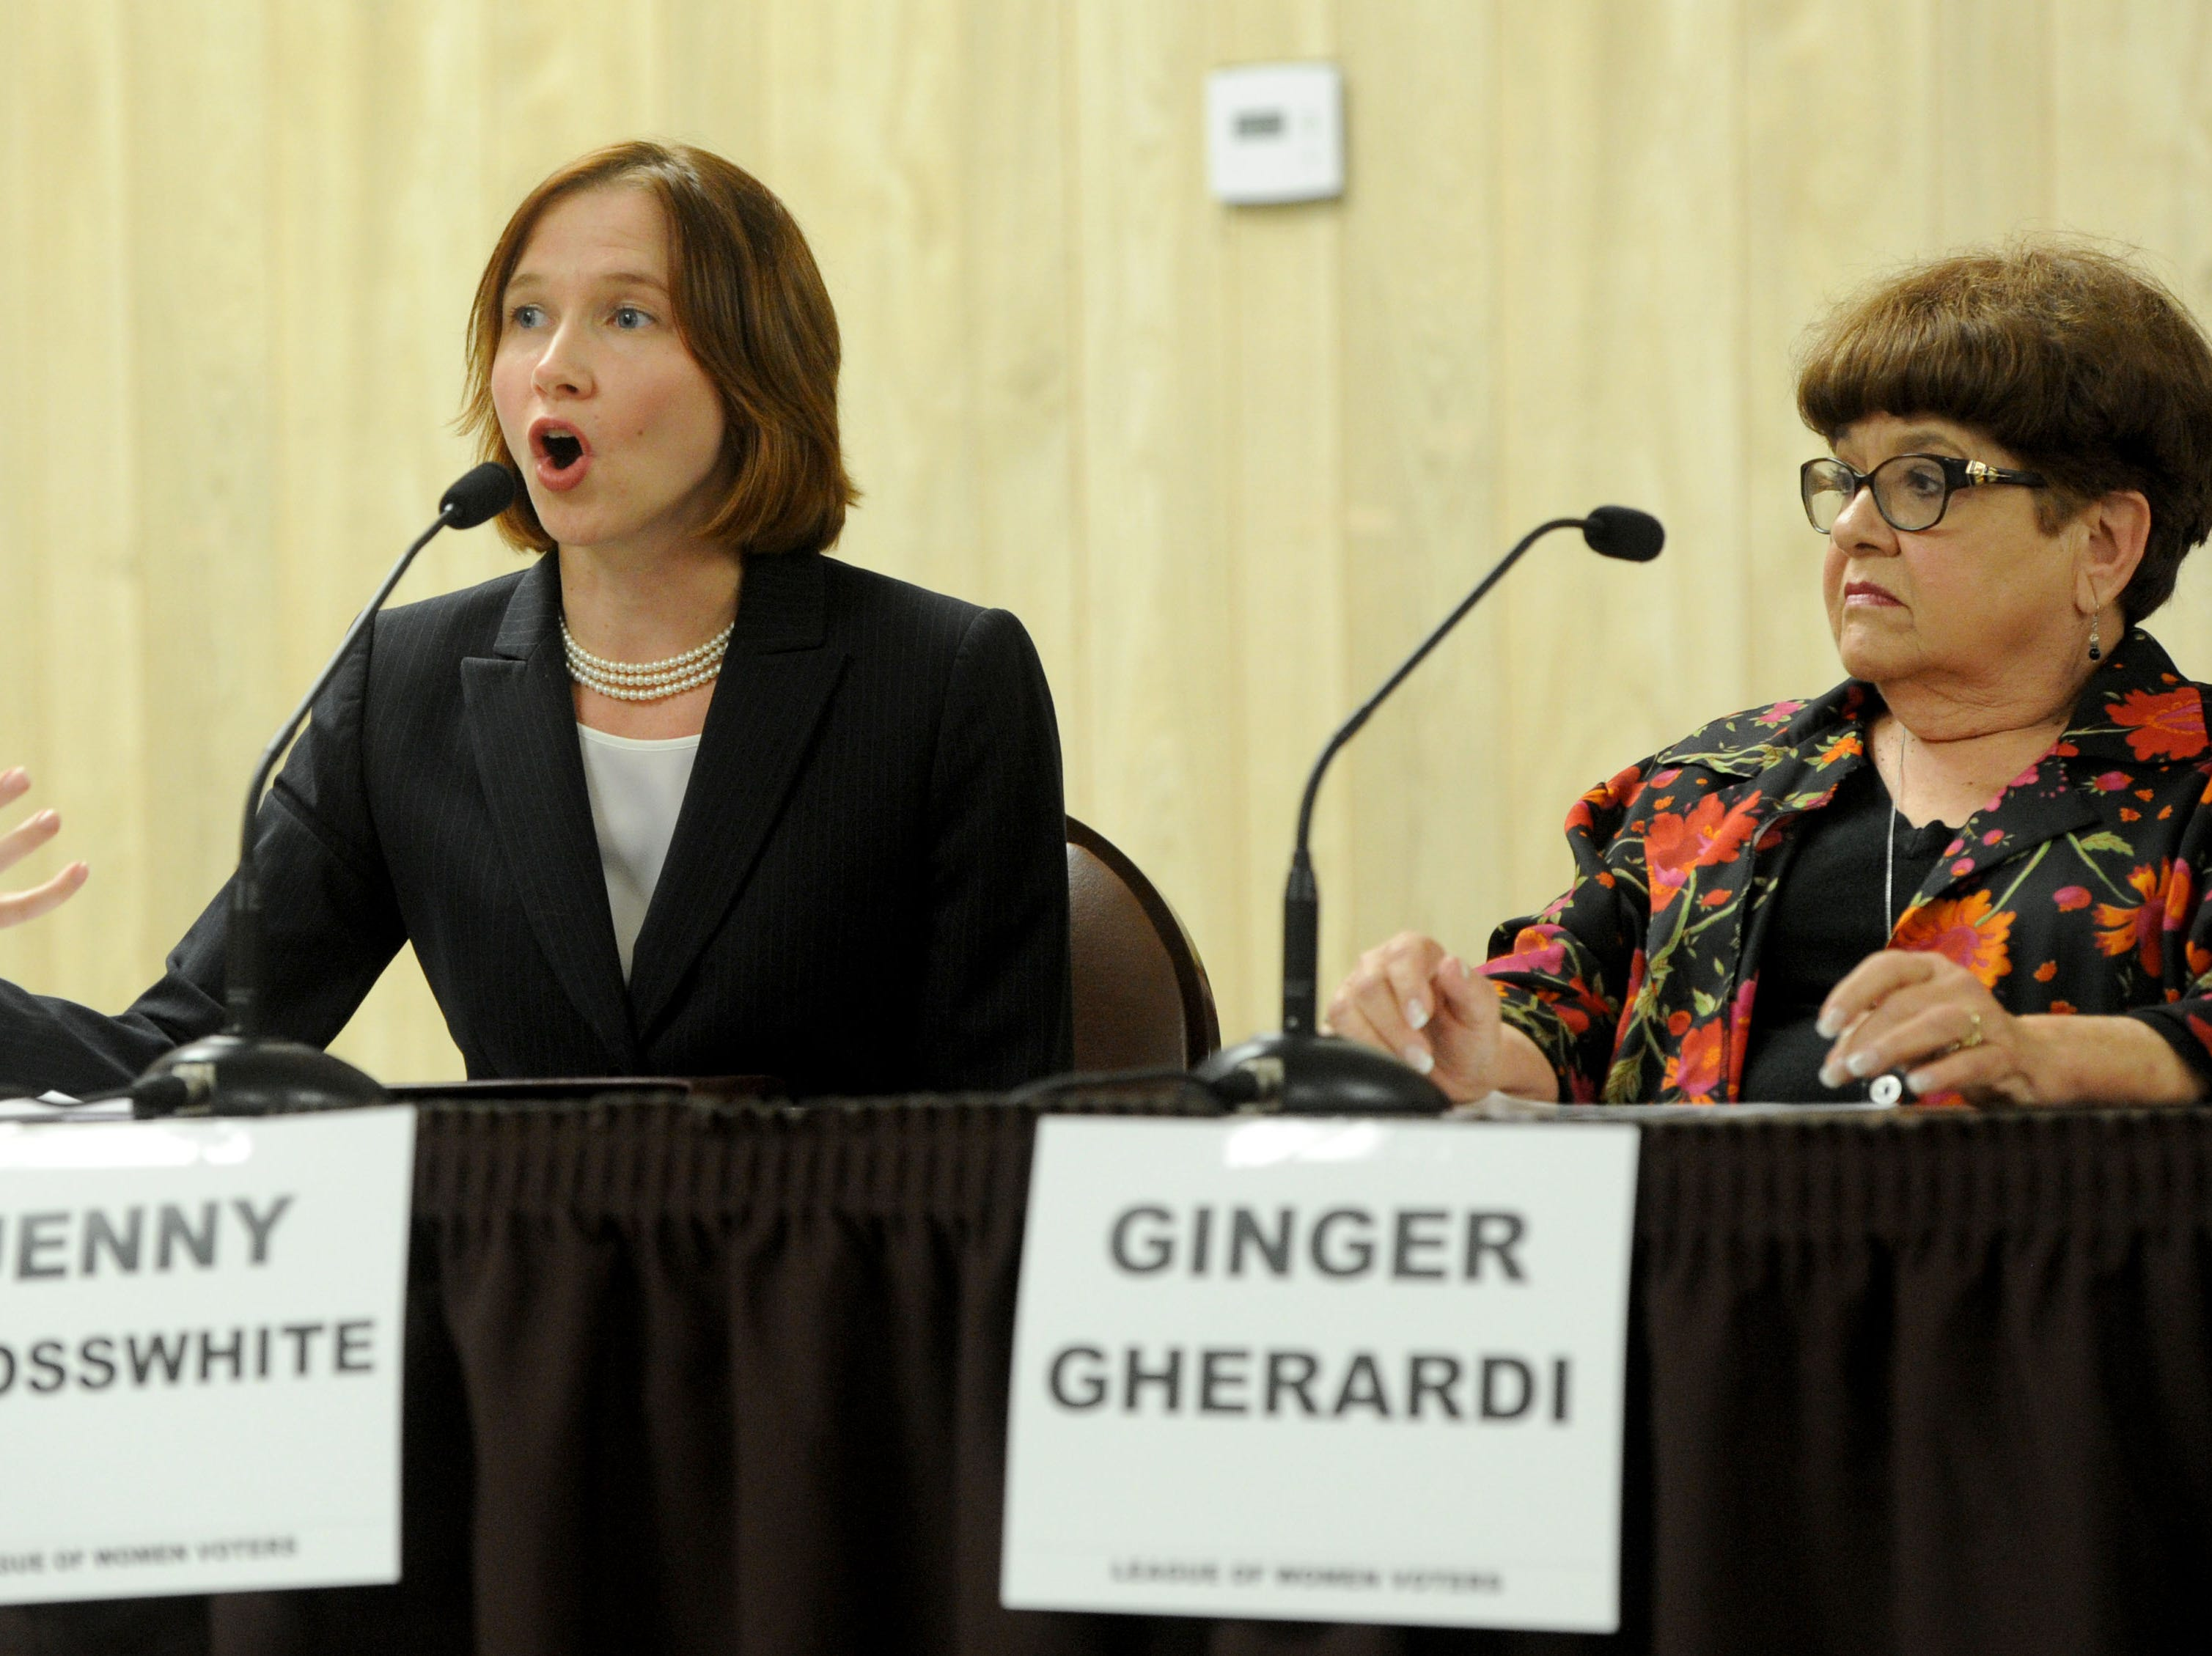 Jenny Crosswhite (left) and Ginger Gherardi (right) answer a question about fixing the streets at the debate for Santa Paula city council at the Santa Paula Community Center and Senior Center. The Forum was put on by the League of Women Voters and co-sponsored by the Santa Paula Chamber of Commerce.